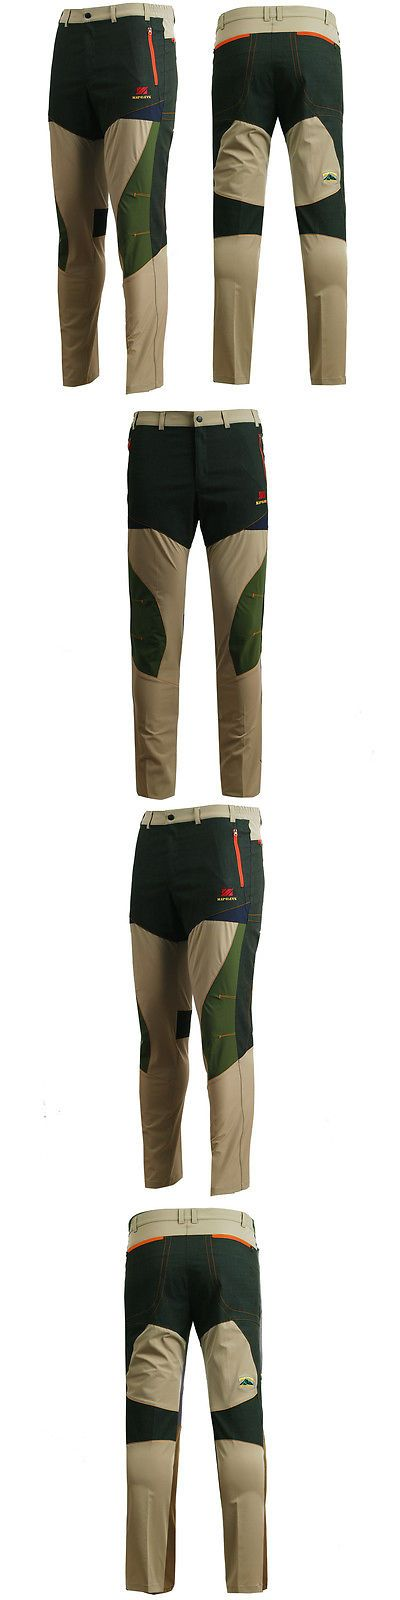 Clothing 101685: Zipravs Mens Outdoor Clothing Road Hiking Camping Working Trousers Sports Pants BUY IT NOW ONLY: $35.0